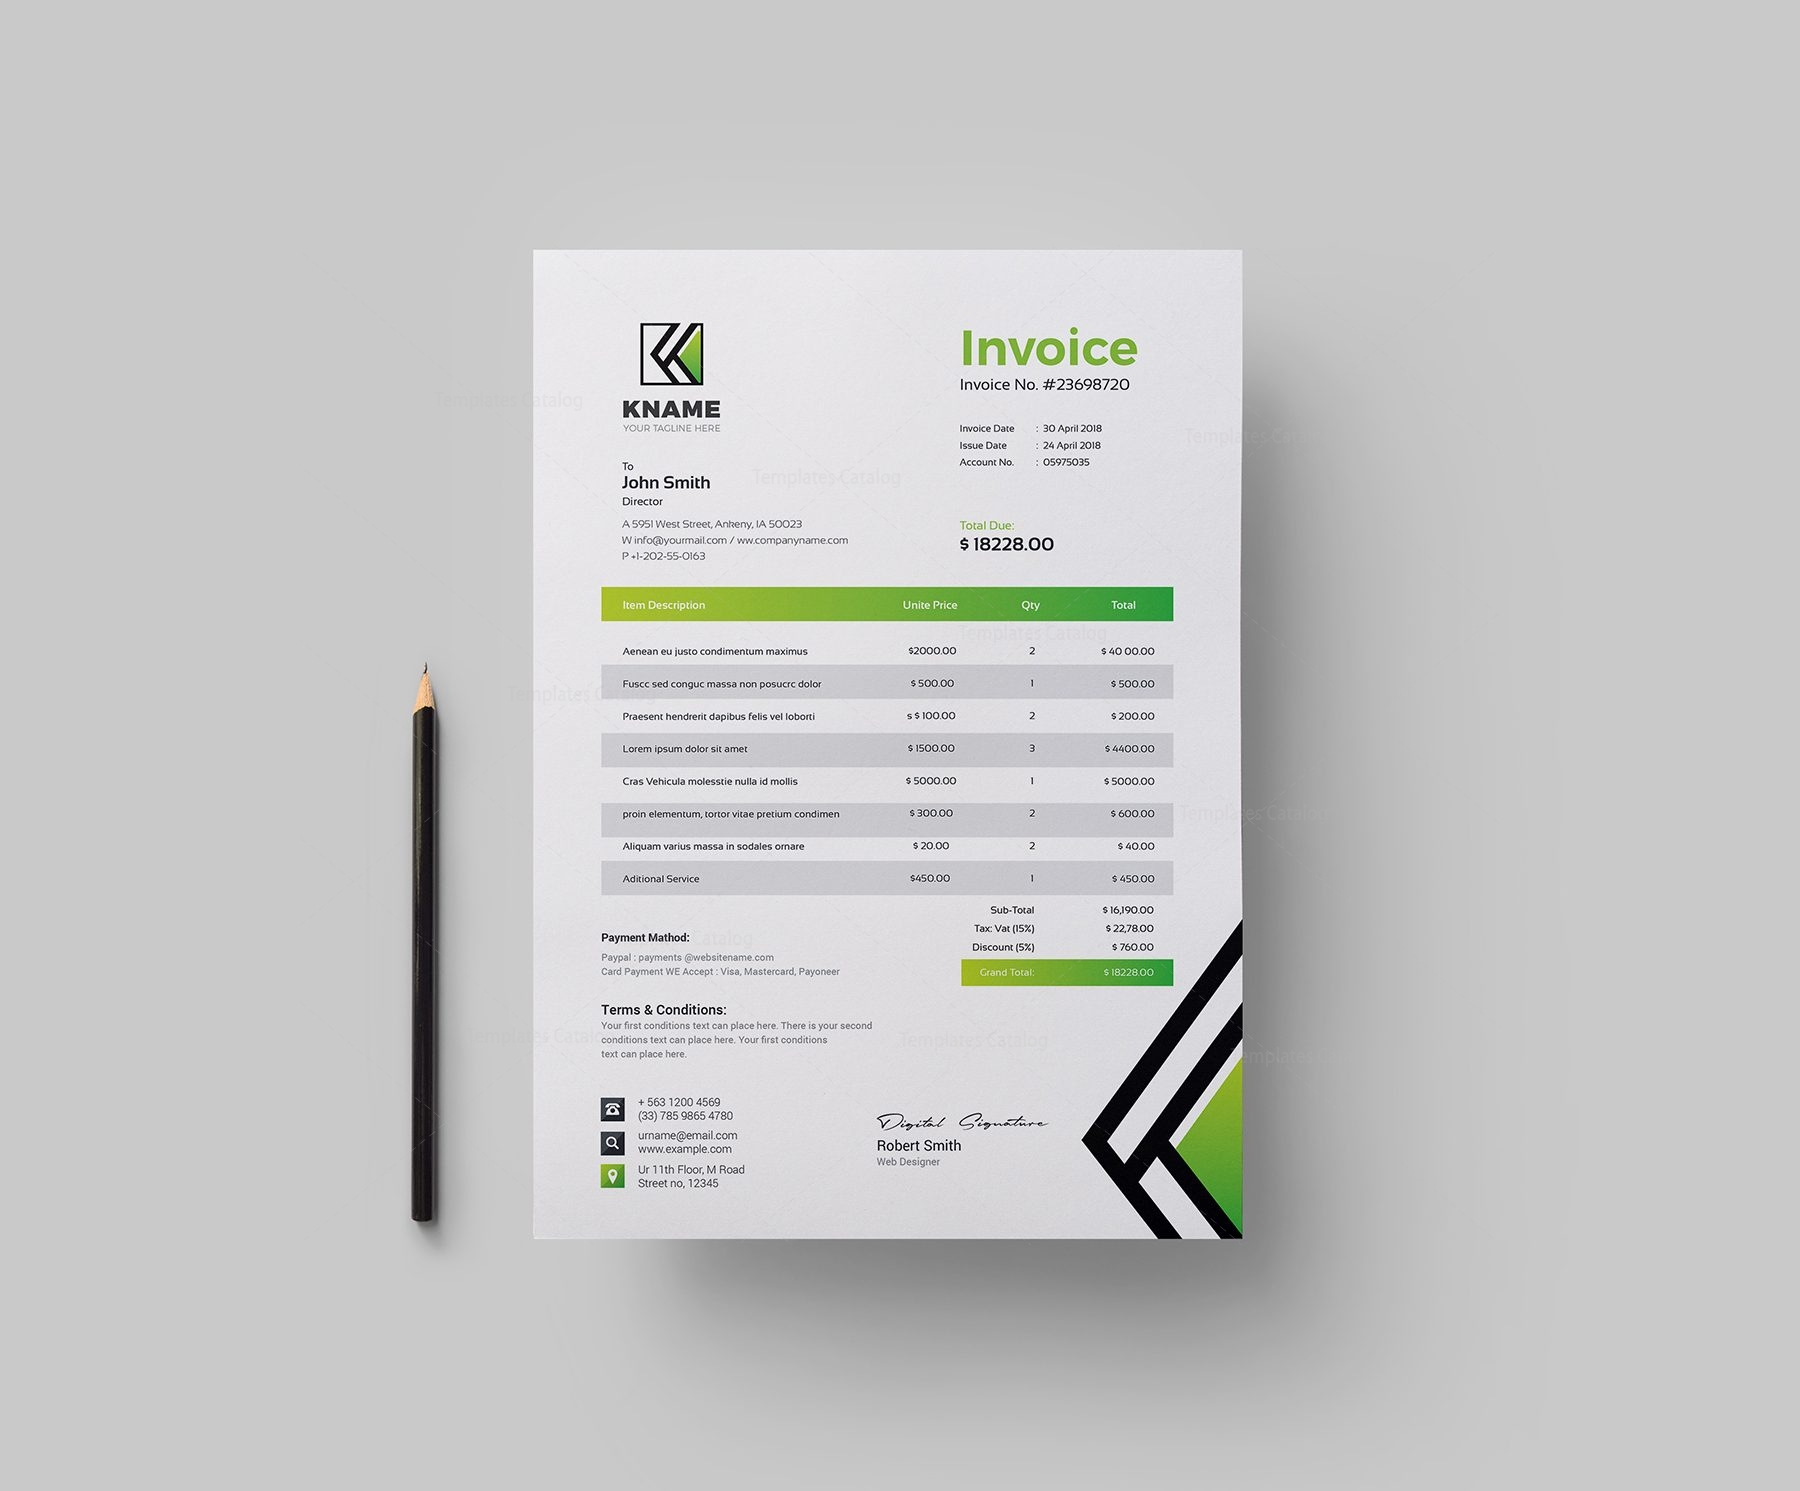 Name Creative Invoice Design Template Graphic Templates